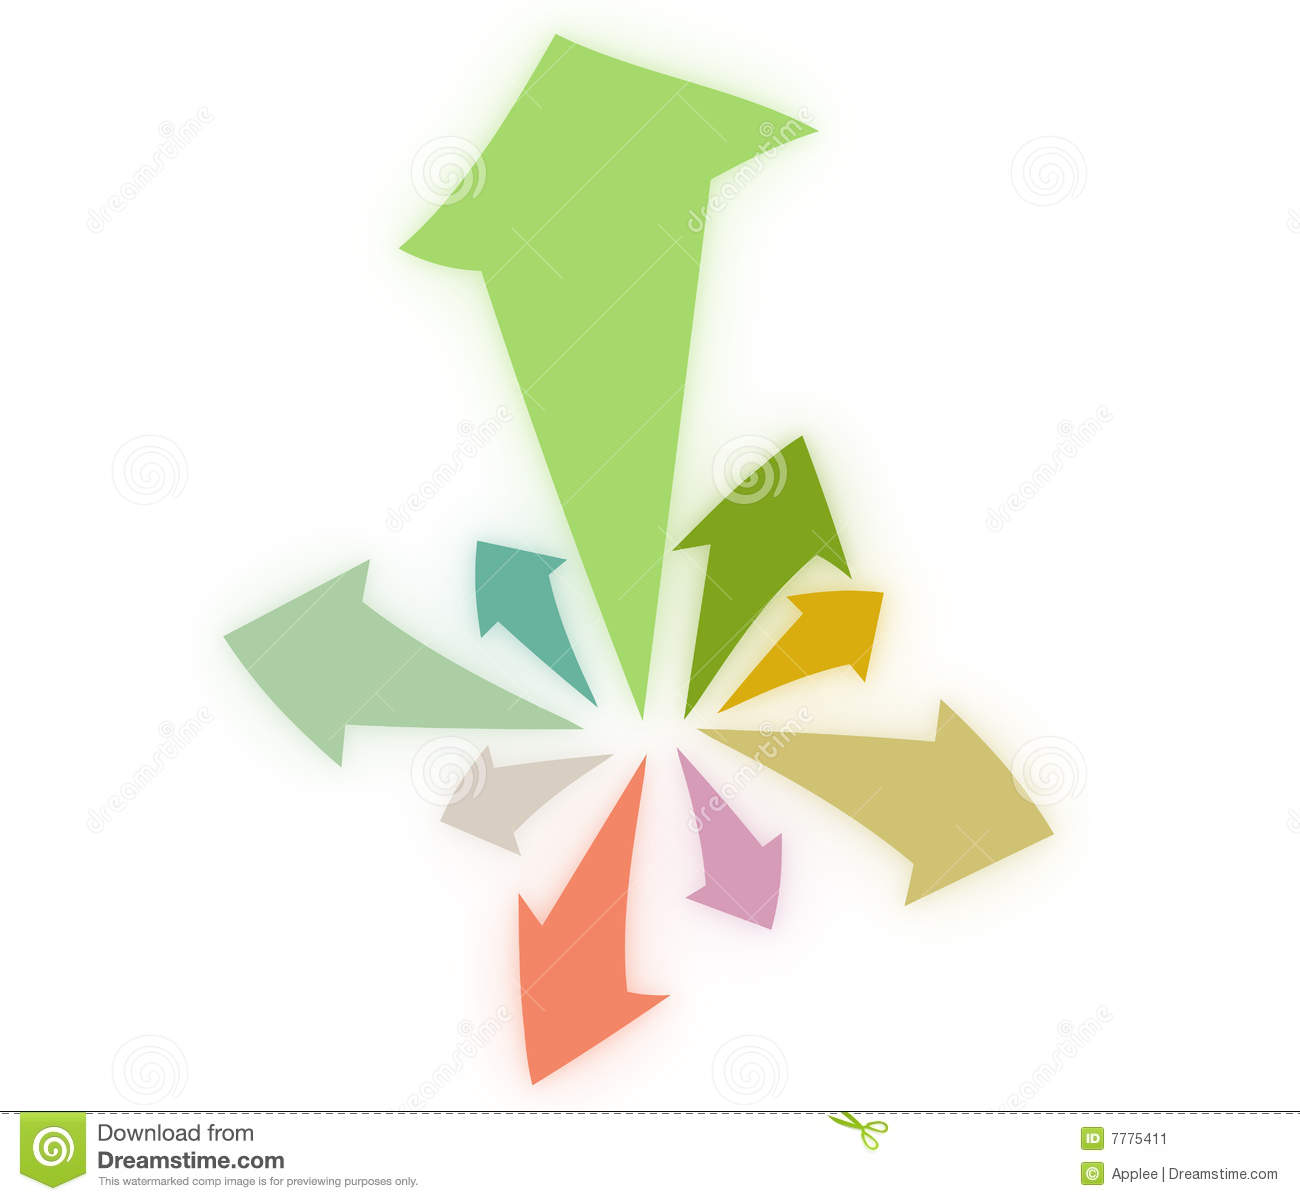 Arrows expanding from center